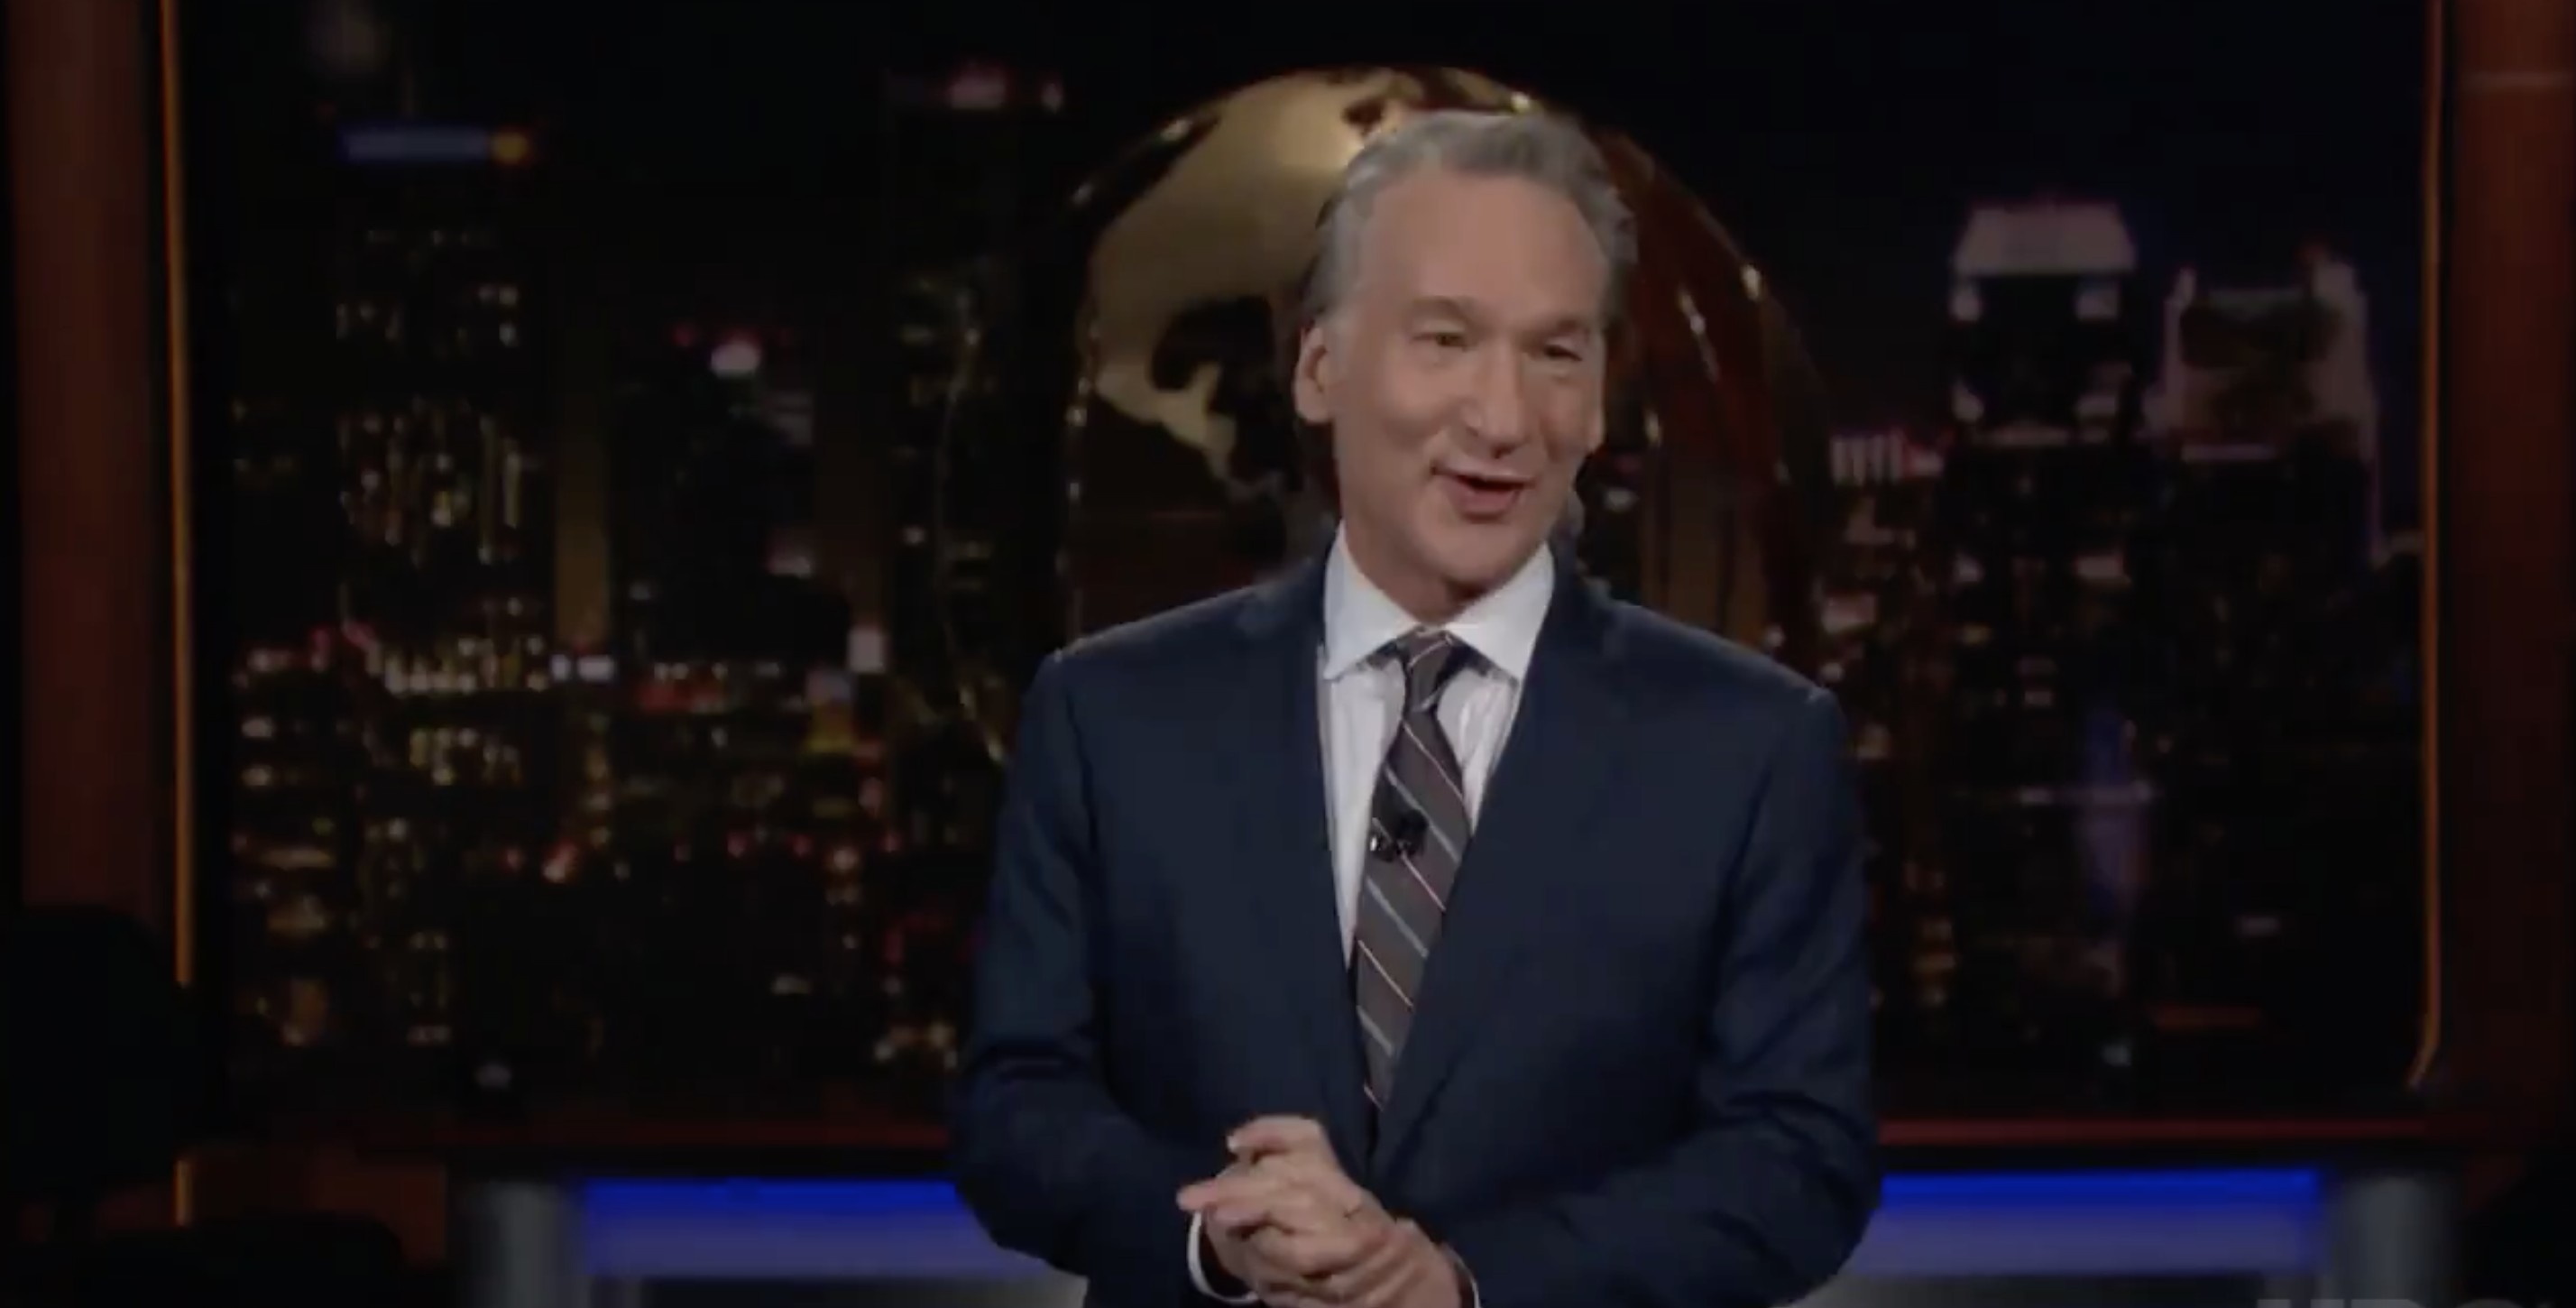 Political Violence And Post-Trump Race Debate Dominate 'Real Time With Bill Maher'